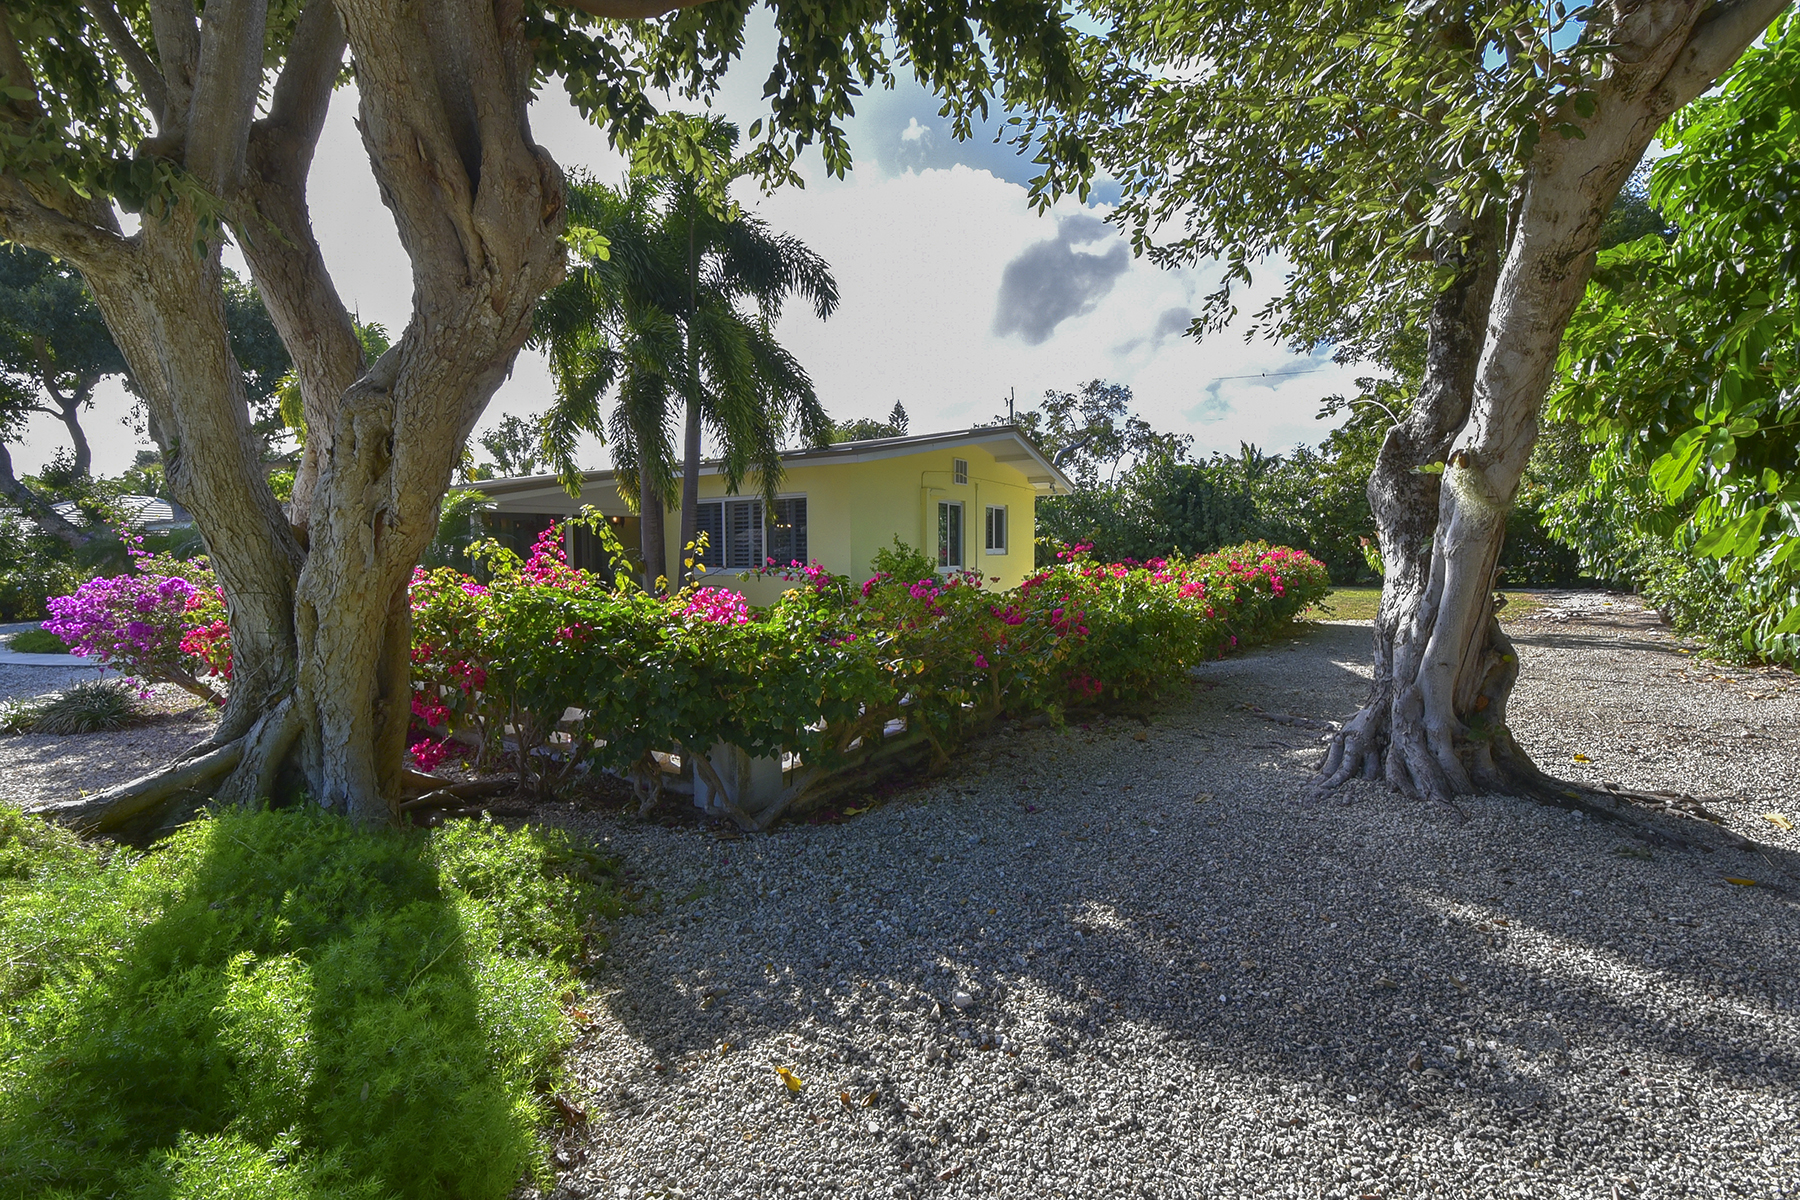 Property for Sale at 17 Perky Road, Key Largo, FL 17 Perky Road Key Largo, Florida 33037 United States